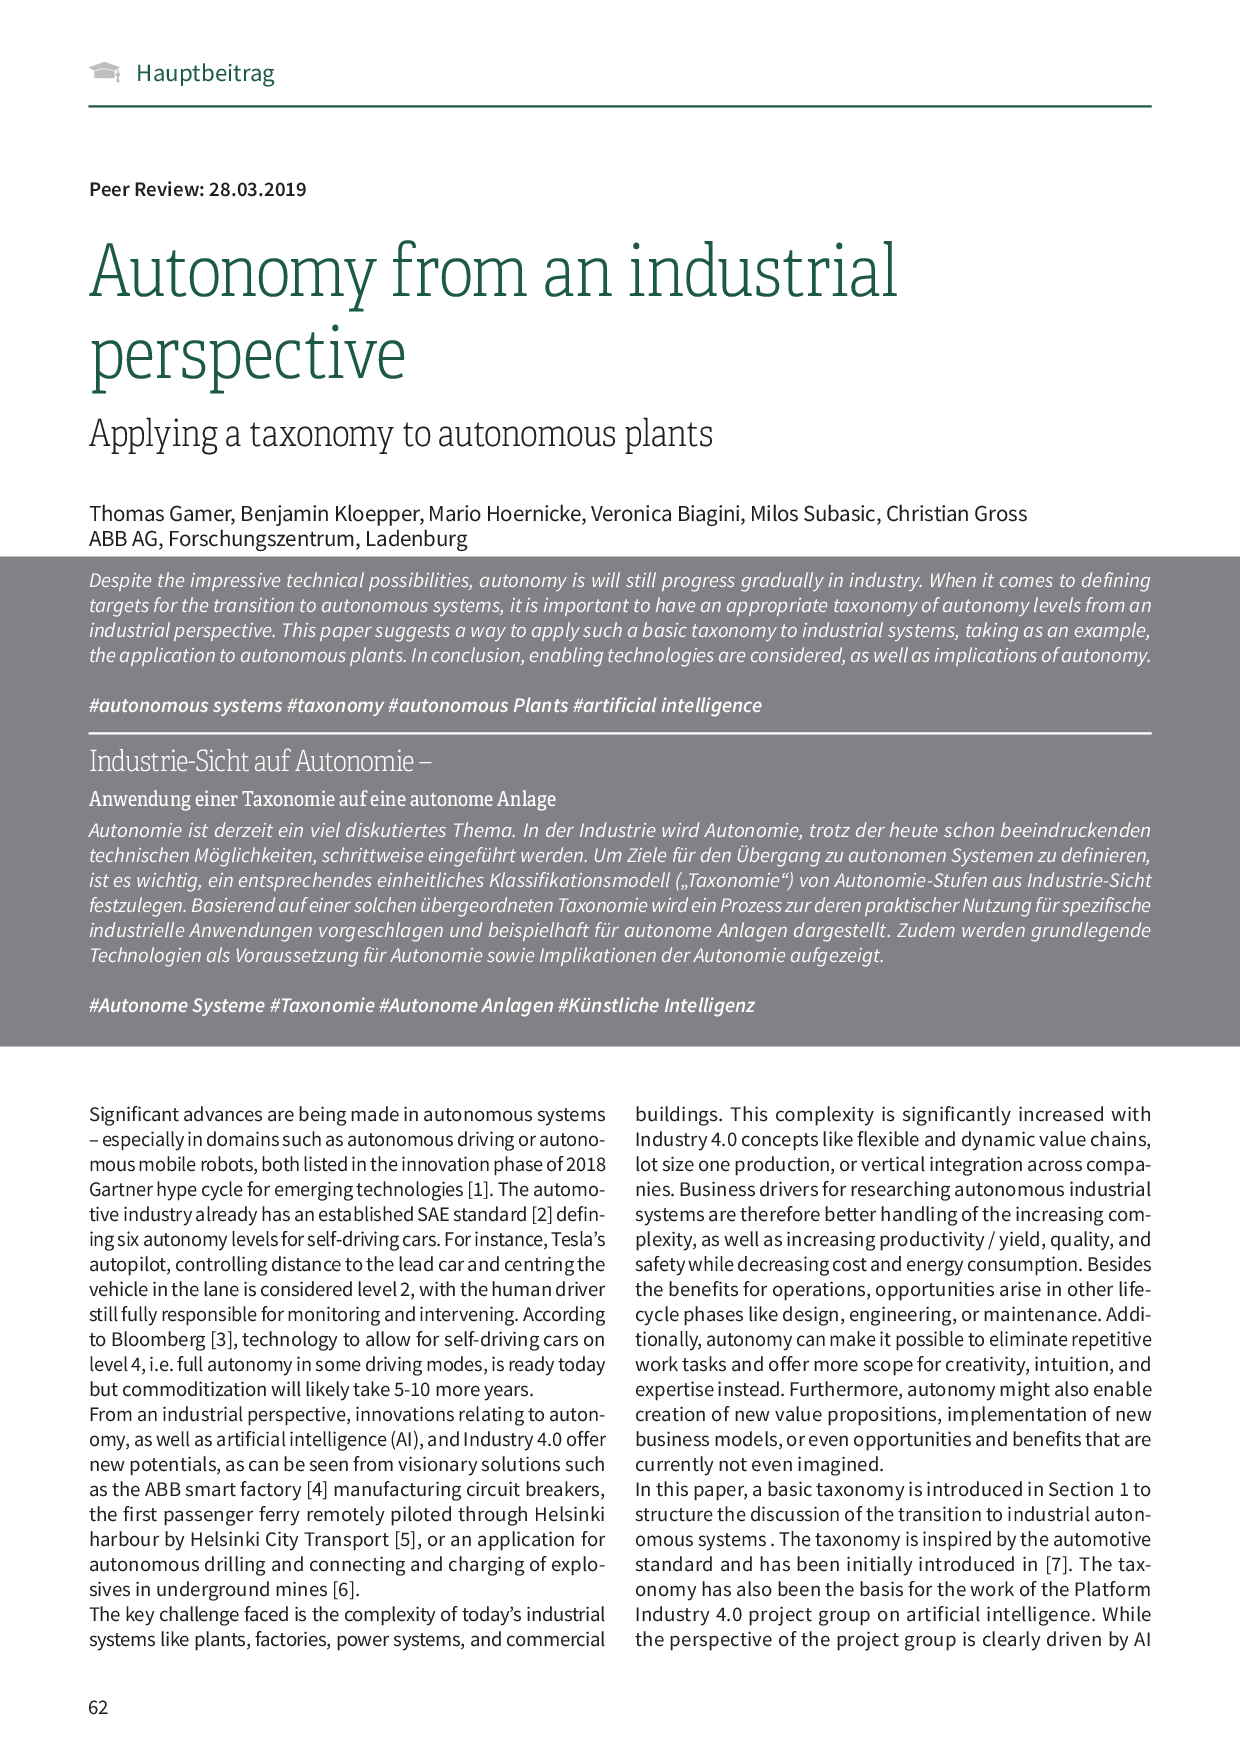 Autonomy from an industrial perspective